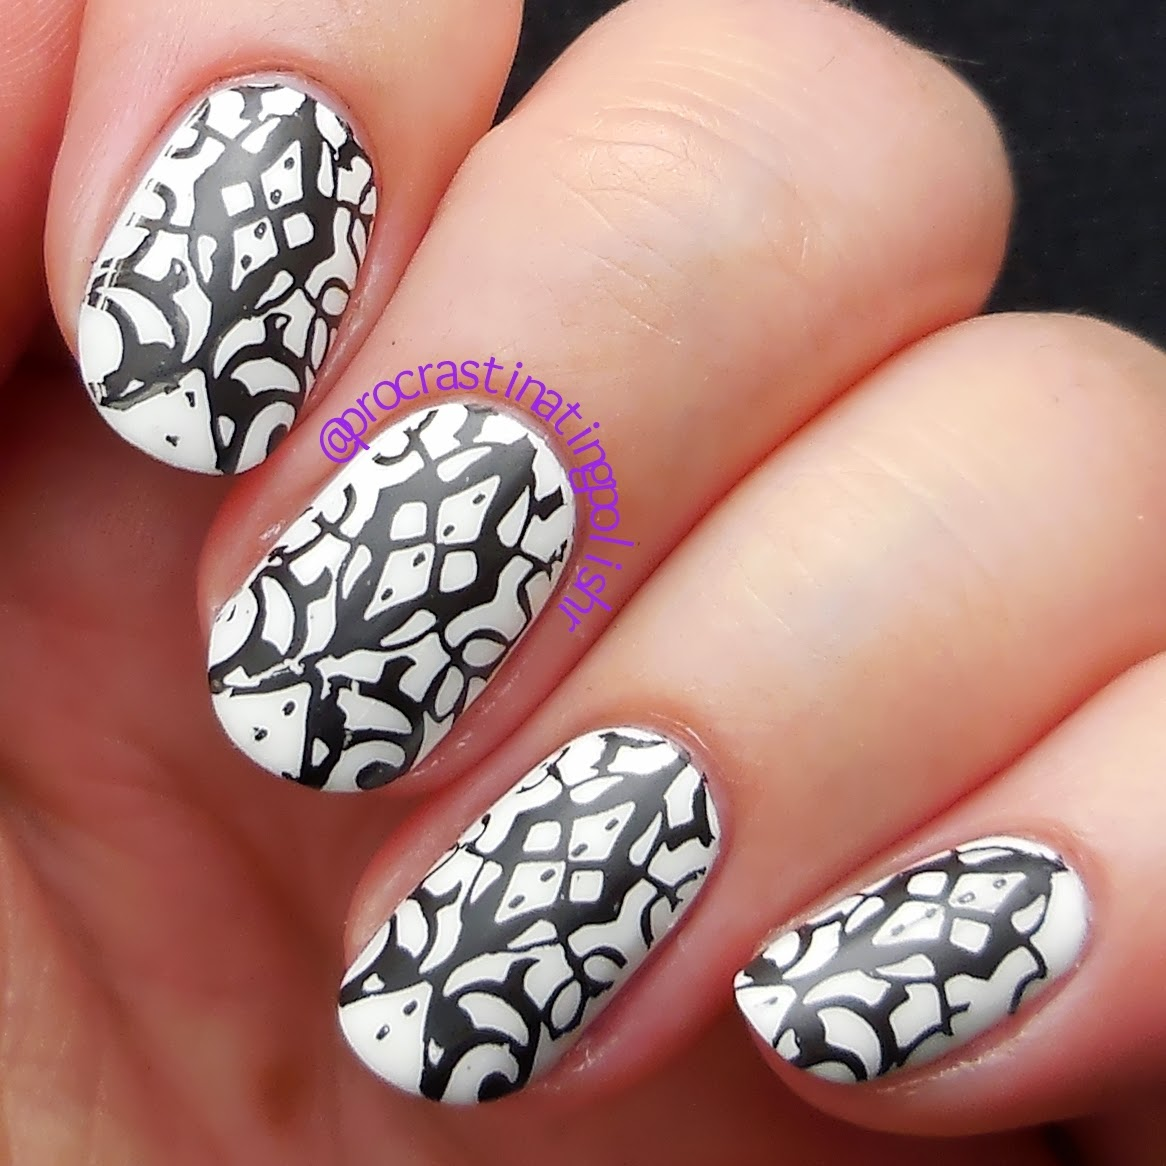 Black & White stamped nail art Emily de Molly EDM09 31DC2014